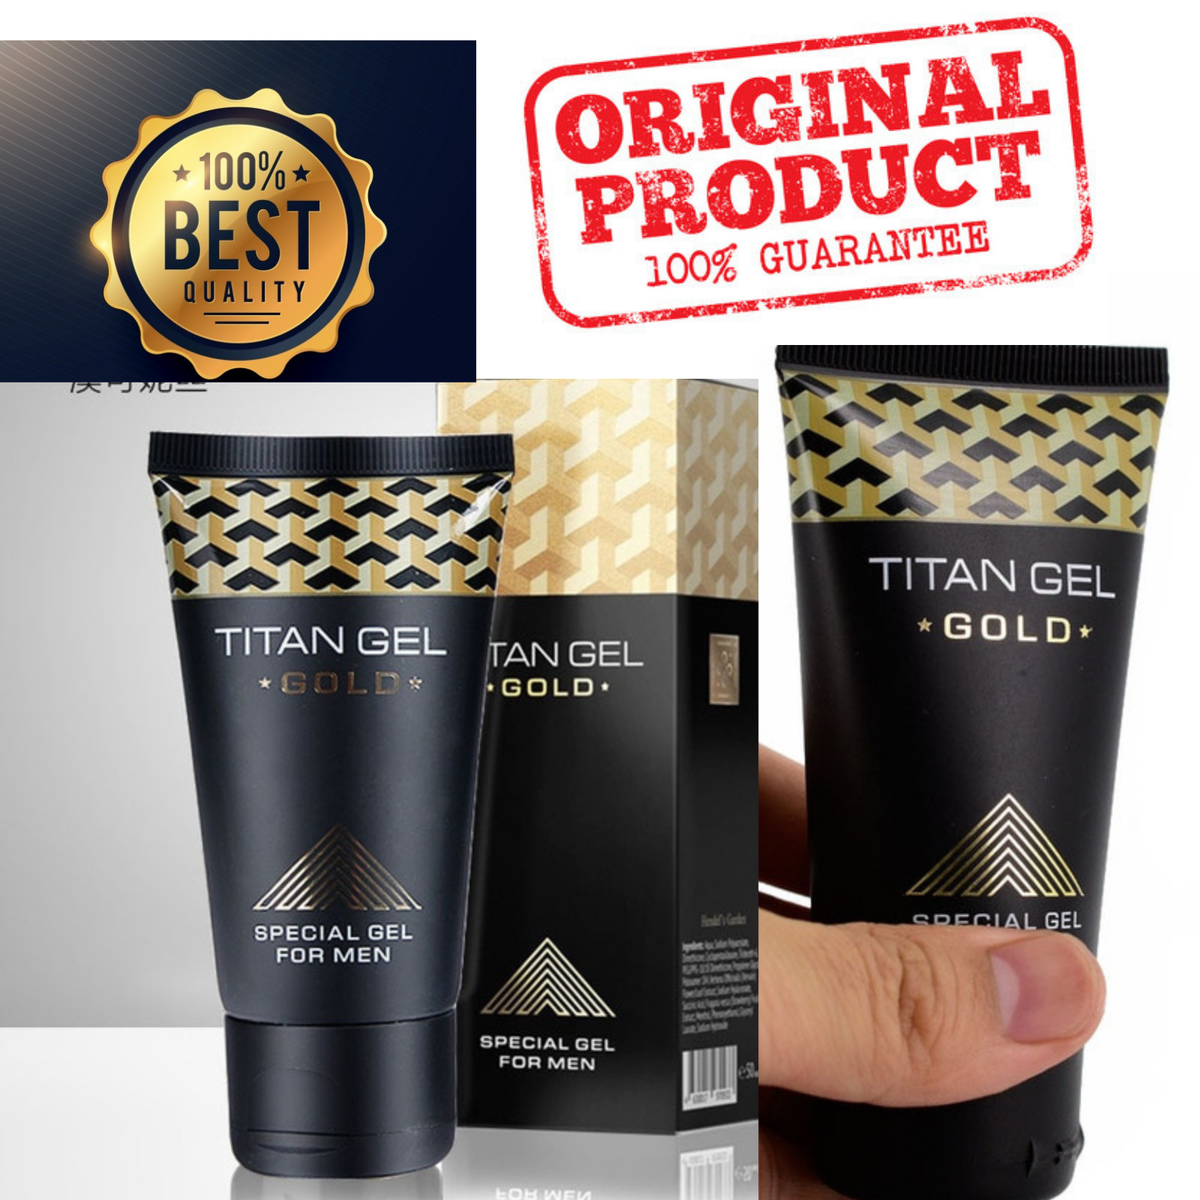 Titan Gel Gold - мужской крем в Краматорске